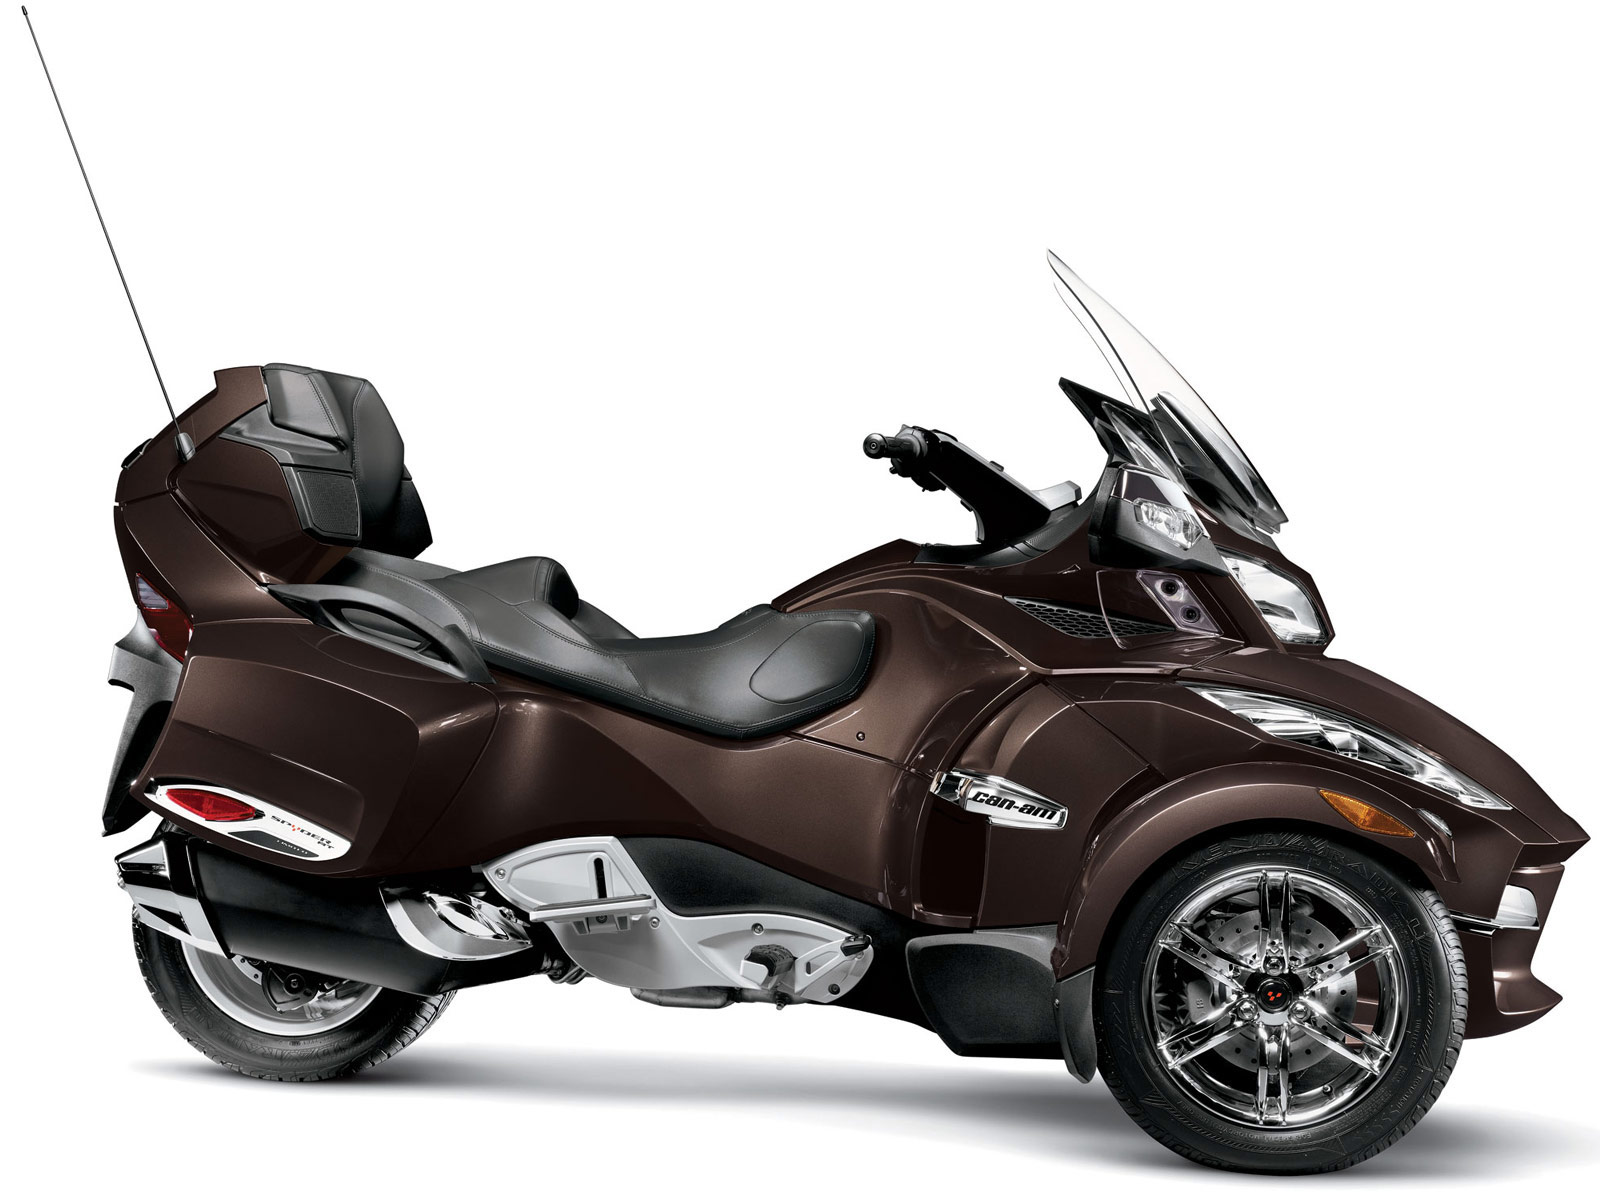 2012 can am spyder rt limited motorcycle photos and specifications. Black Bedroom Furniture Sets. Home Design Ideas